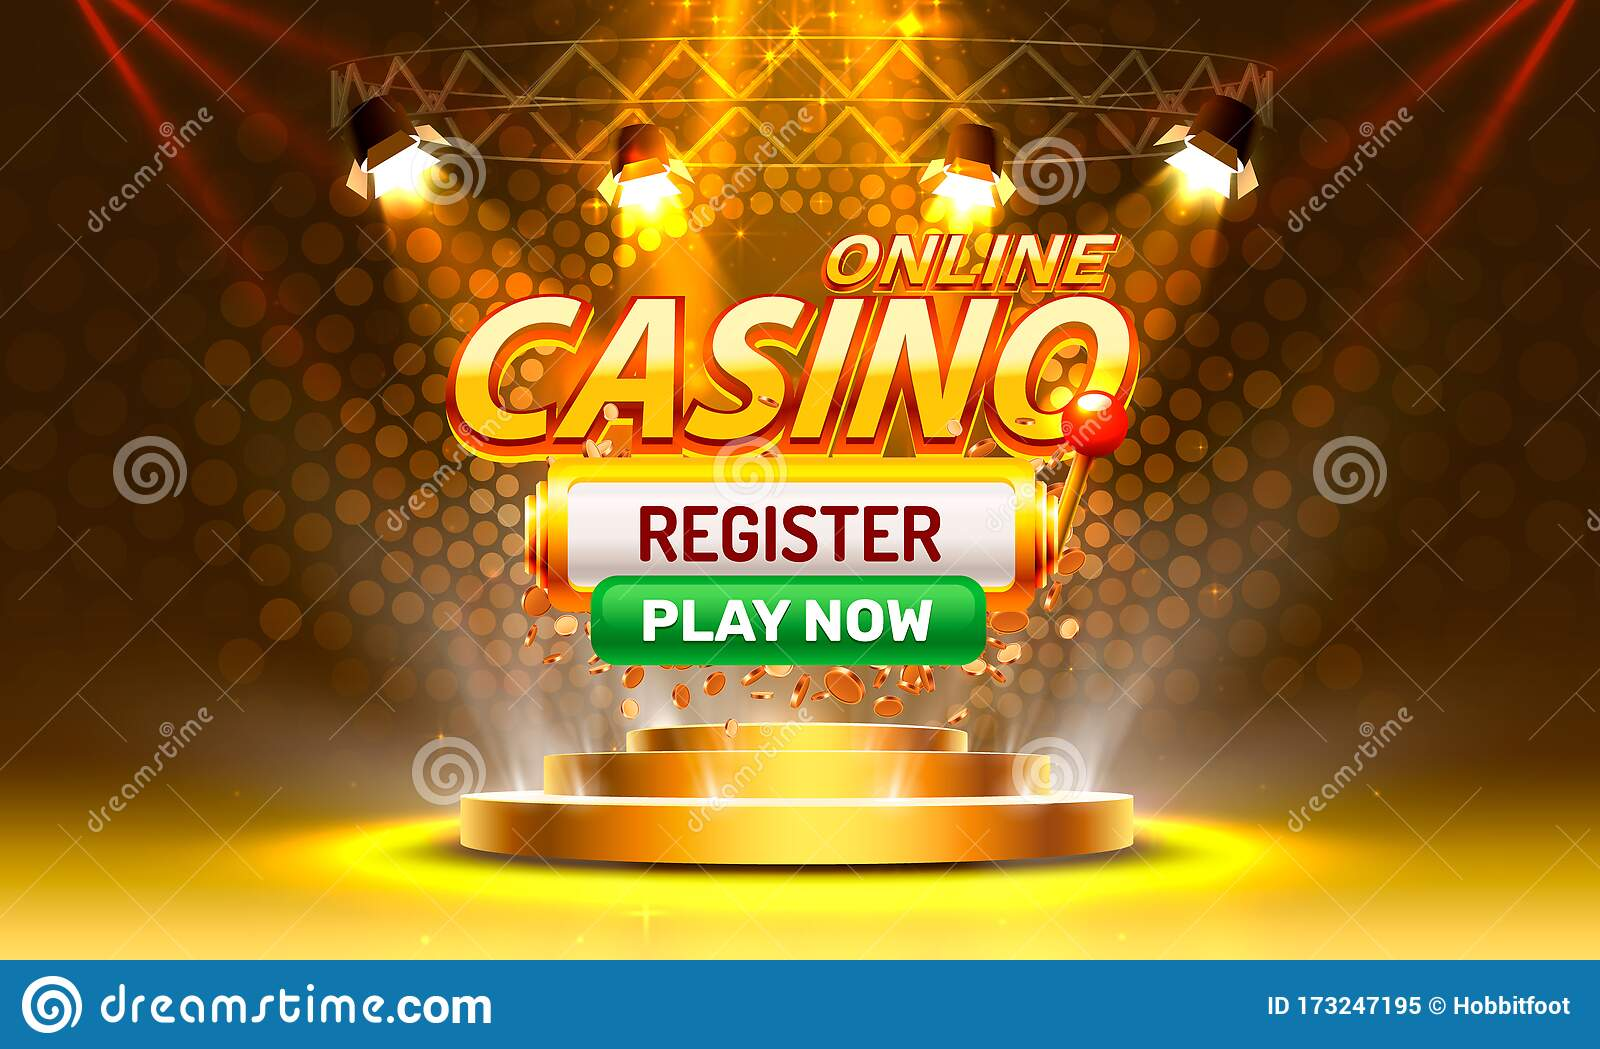 Image result for register online casino